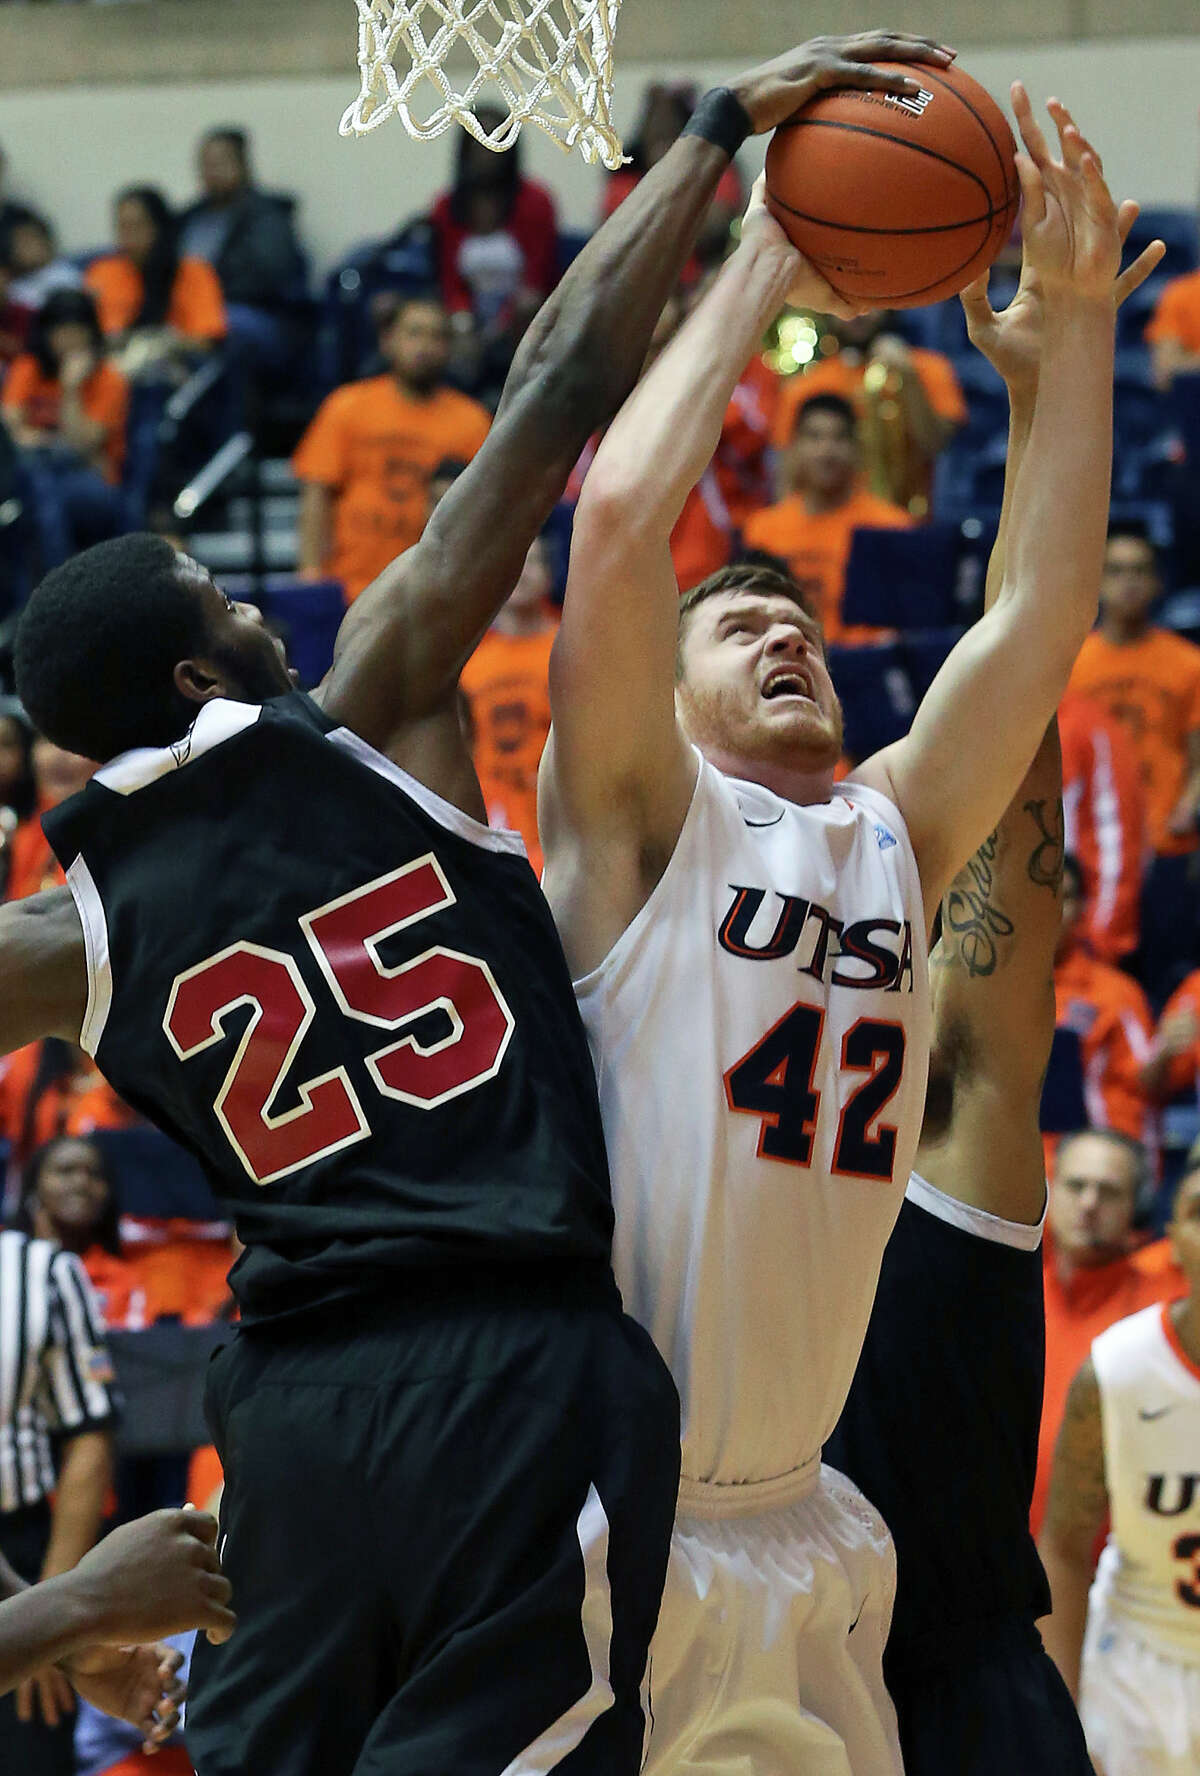 UTSA forward Tyler Wood gets blocked under the backboard by Renaldo Dixon as the Roadrunners host New Mexico State on February 2, 2013.